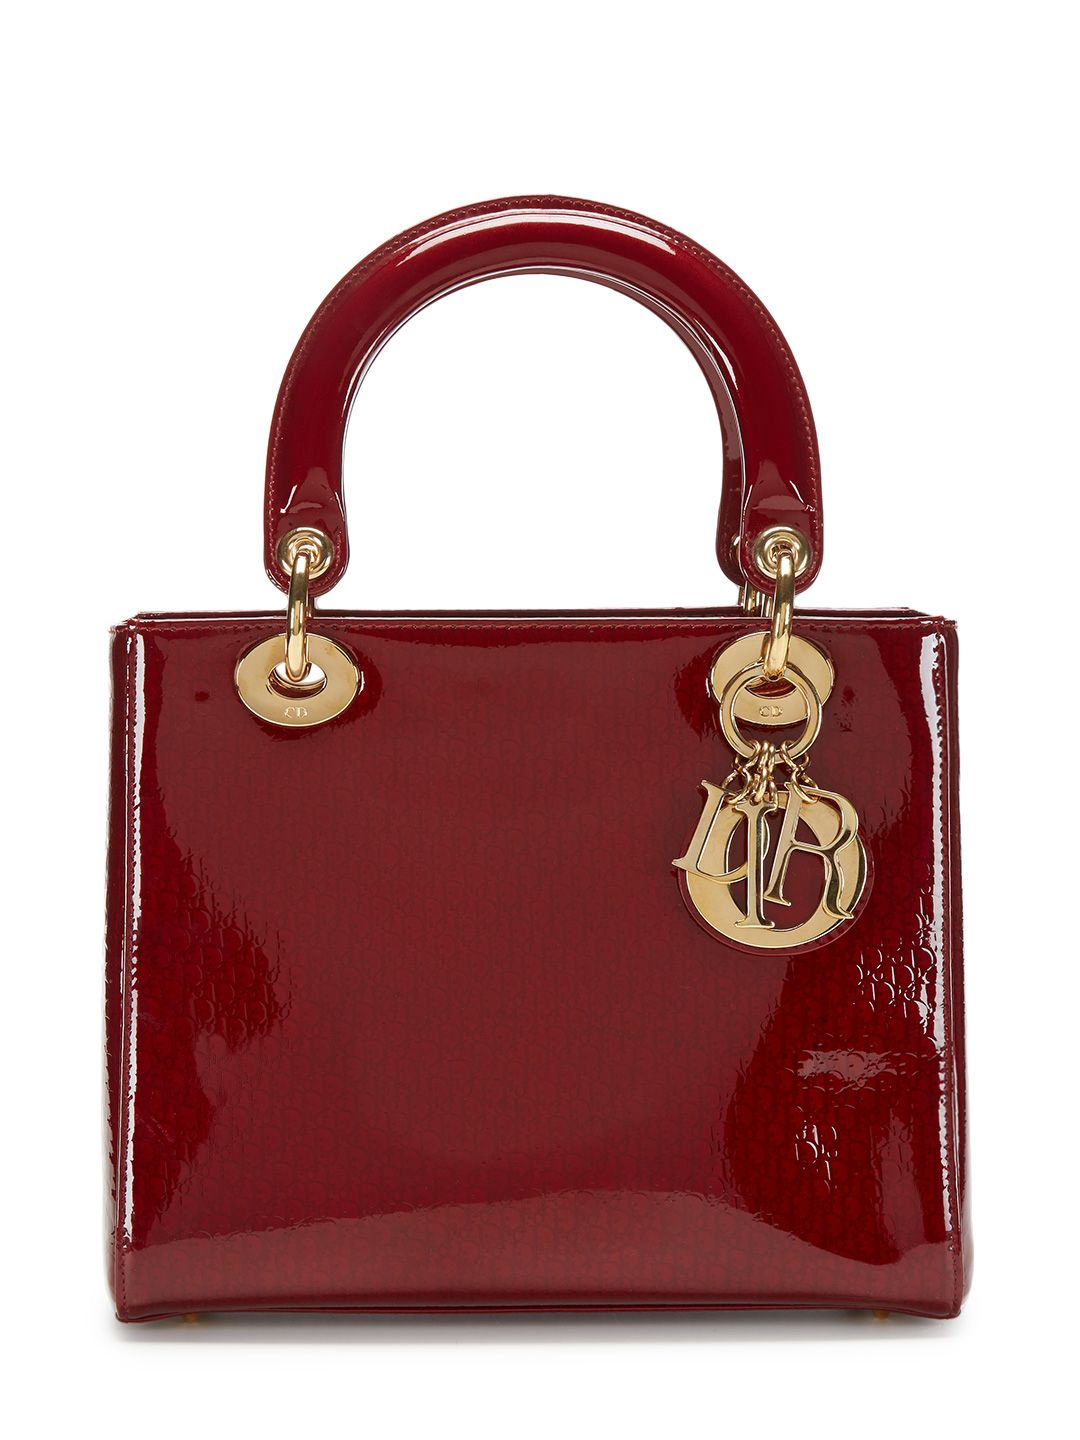 8da68db1a58a Christian Dior Burgundy Patent Leather Medium Lady Dior Bag by Dior at Gilt